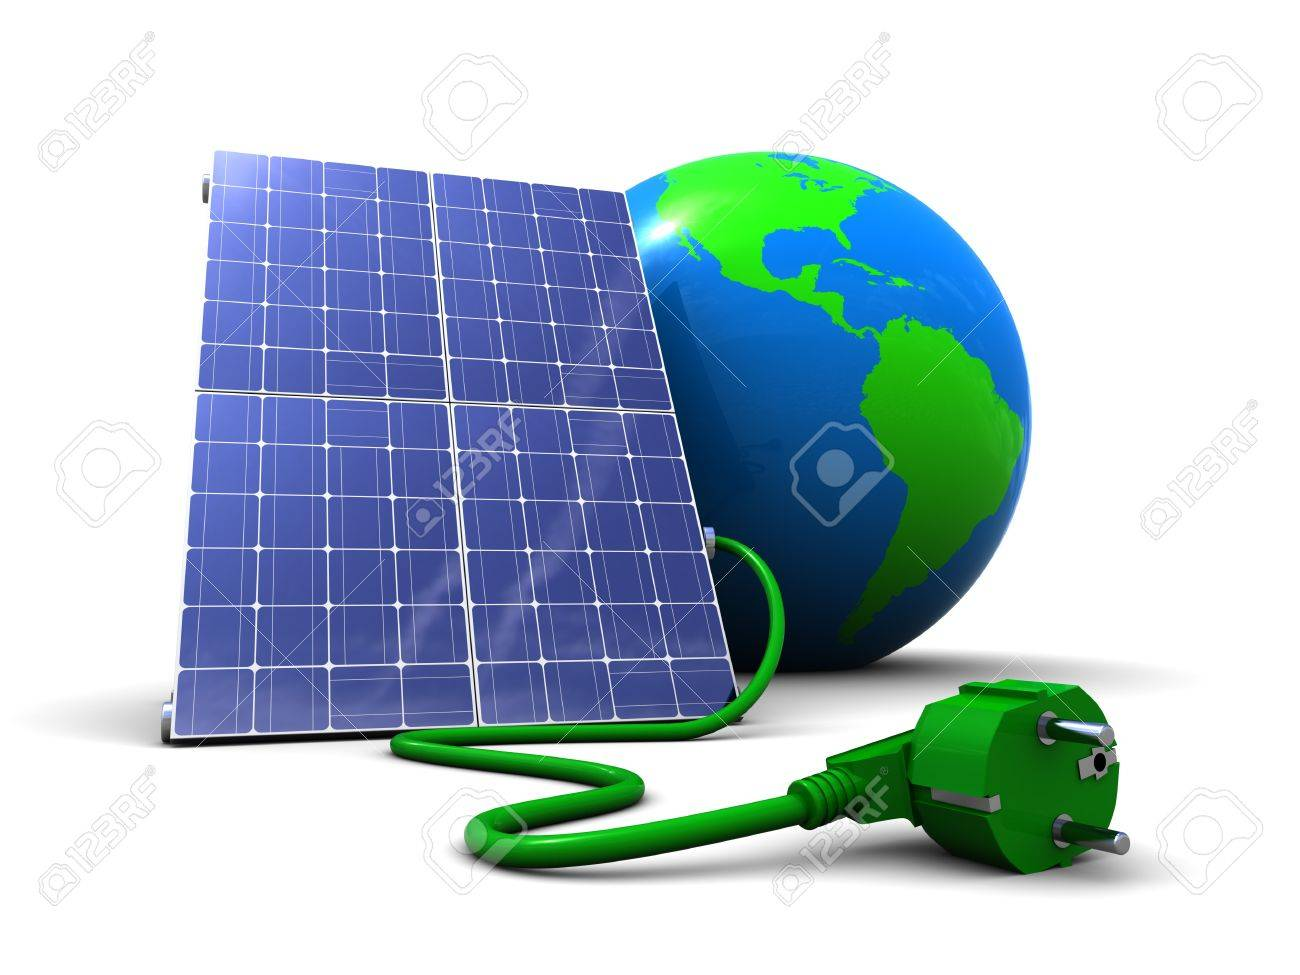 abstract 3d illustration of solar panel with earth globe, over white background Stock Photo - 7131416